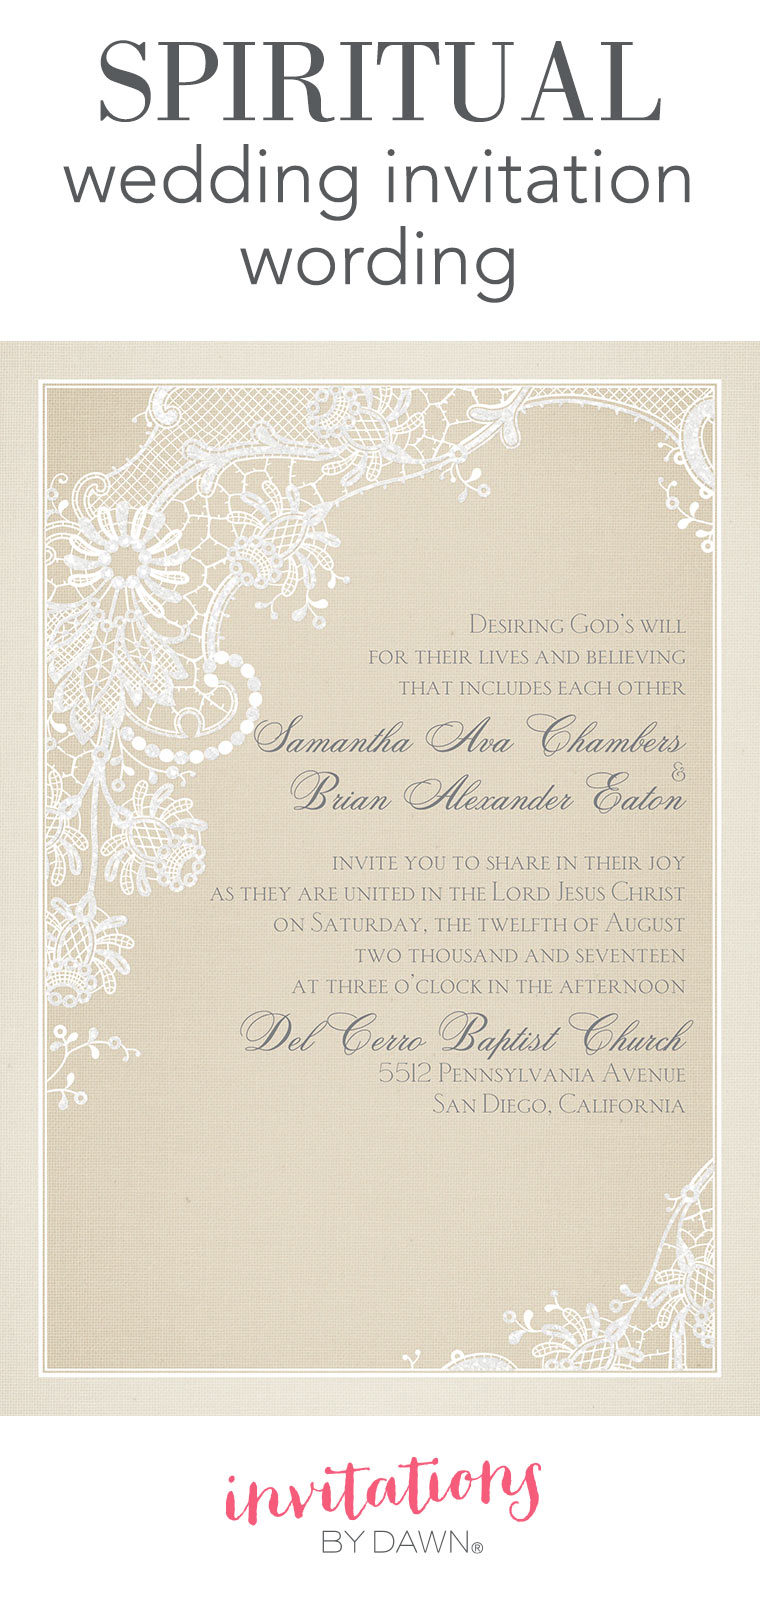 Wedding Invitation In English Wordings: Spiritual Wedding Invitation Wording